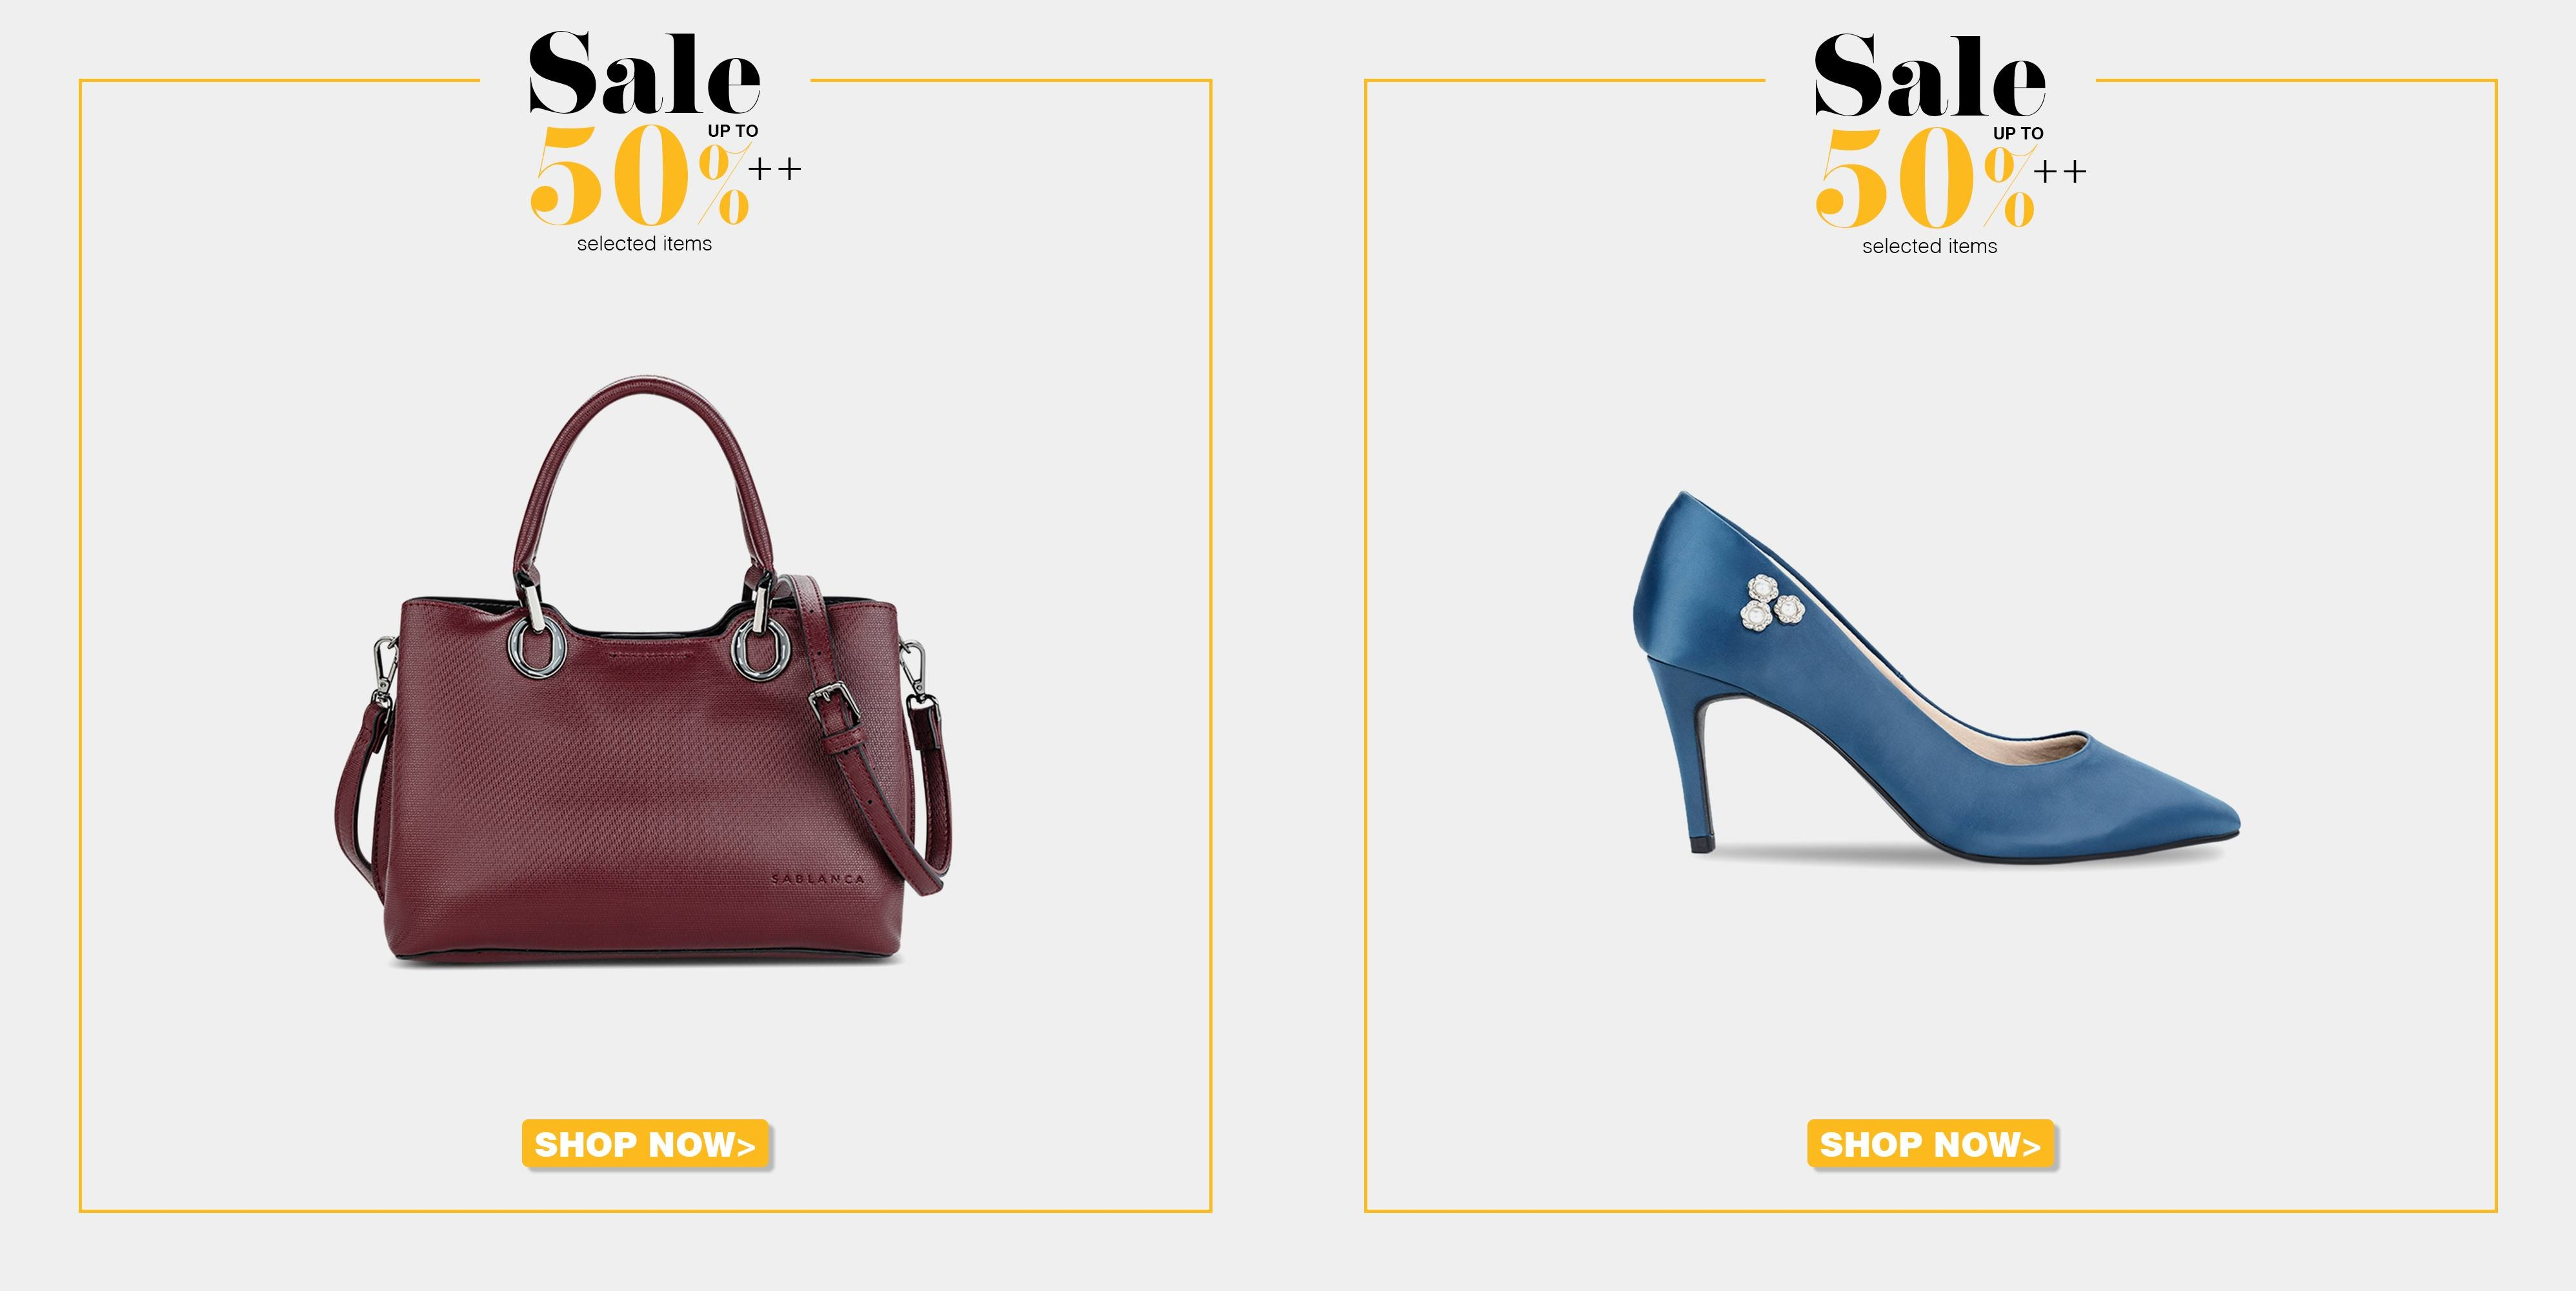 sablanca-happy-hour-sale-up-to-50%